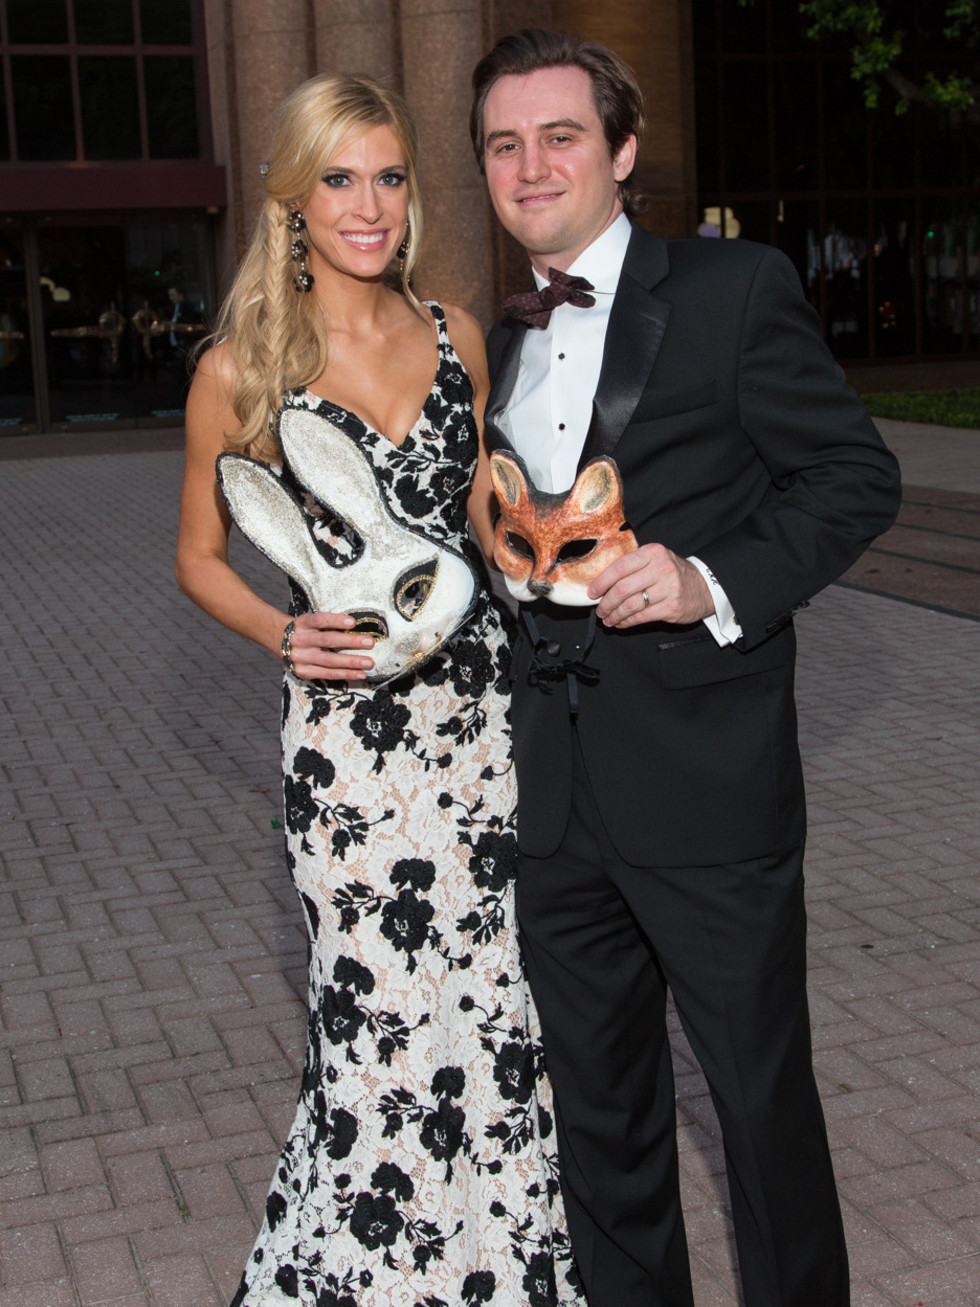 Houston, HGO opera ball, April 2017, Kendall and Christopher Hanno